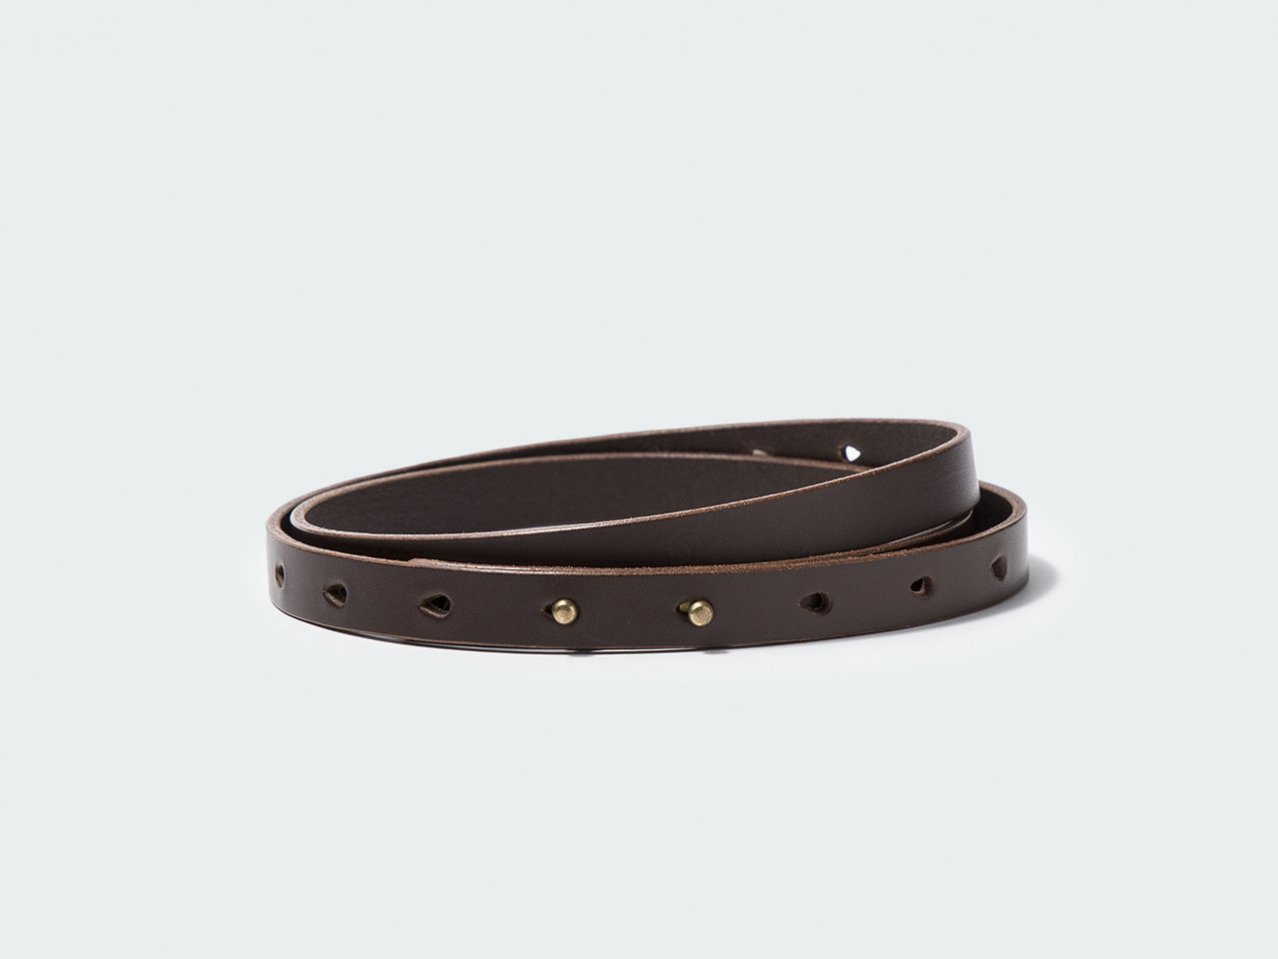 NARROW BUTTON BELT 15 / DARK BROWN